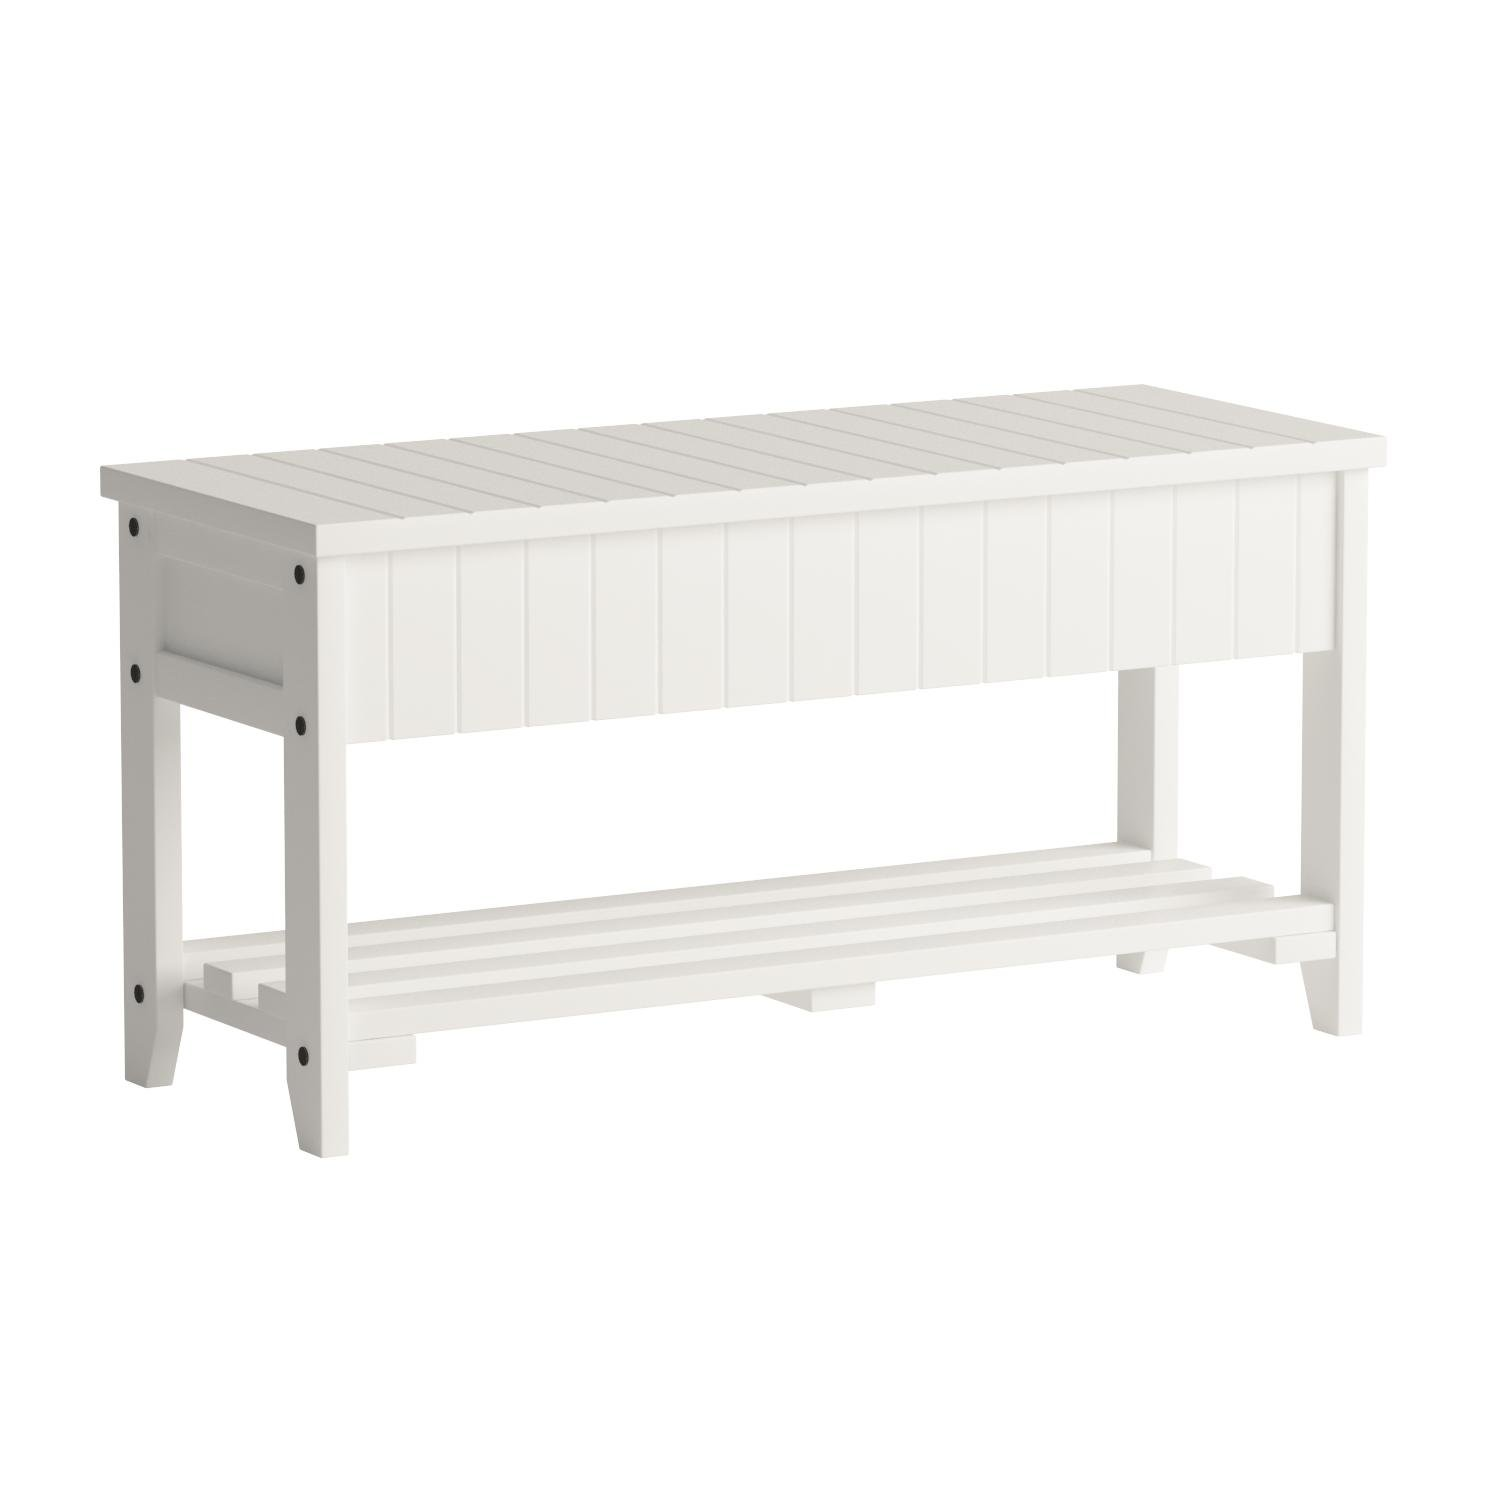 Roundhill Furniture Quality Solid Wood Shoe Bench Storage, White